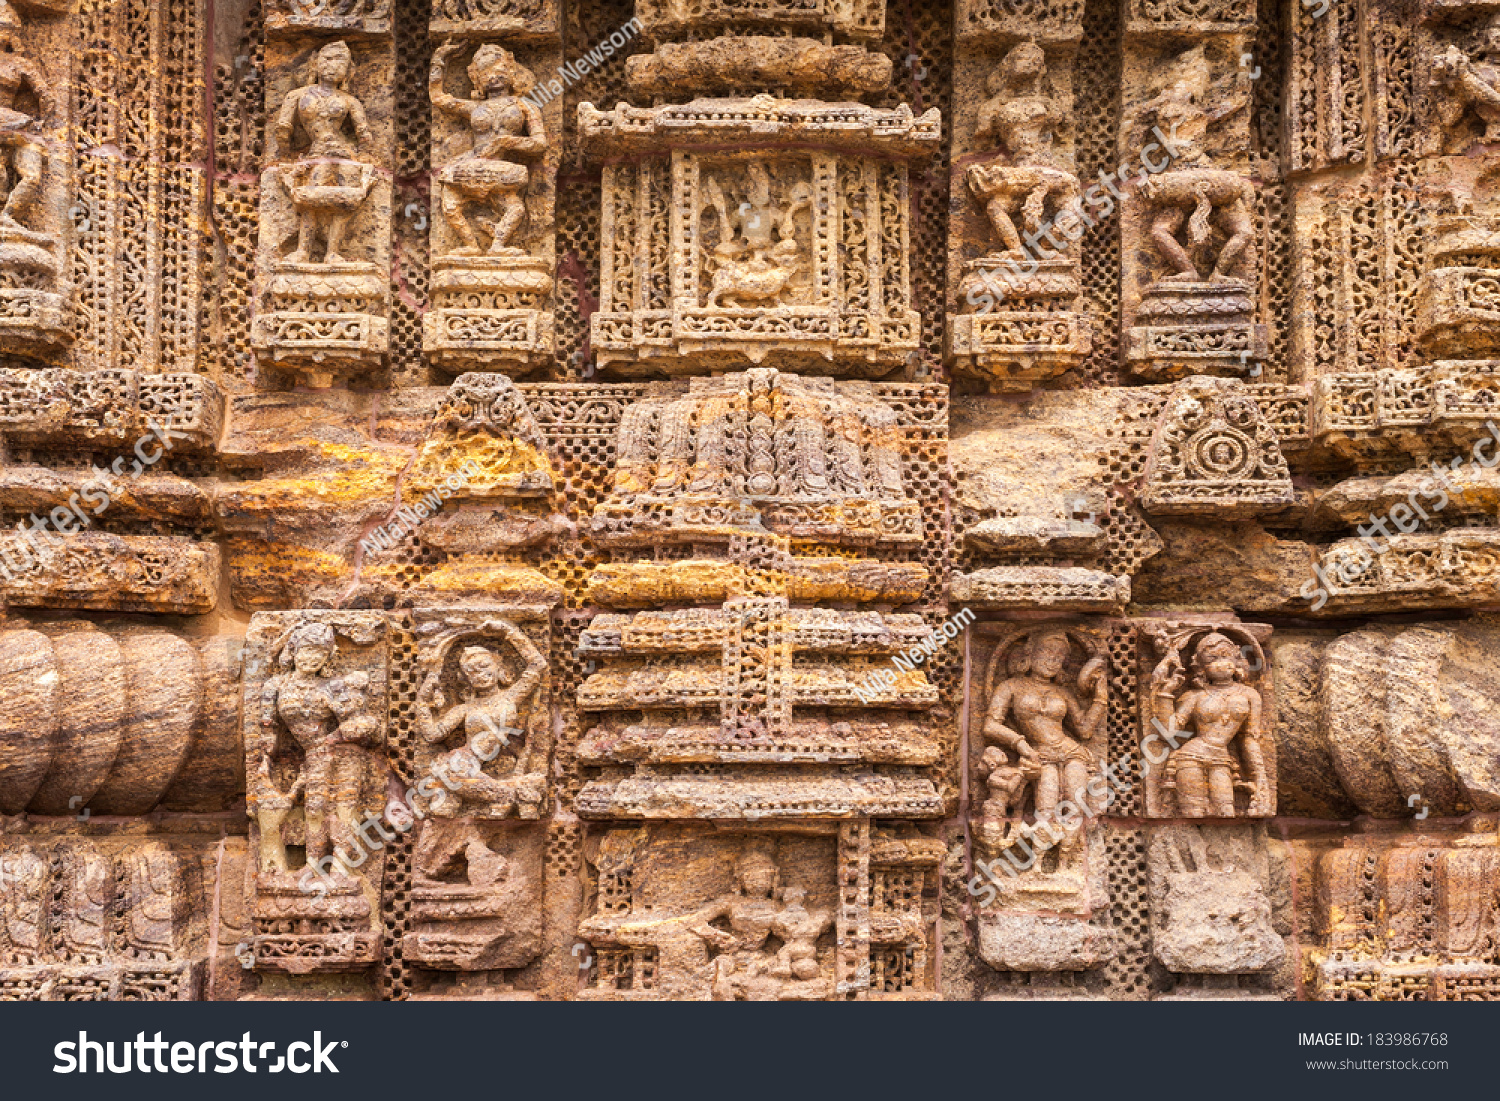 Ancient sandstone carvings on walls stock photo